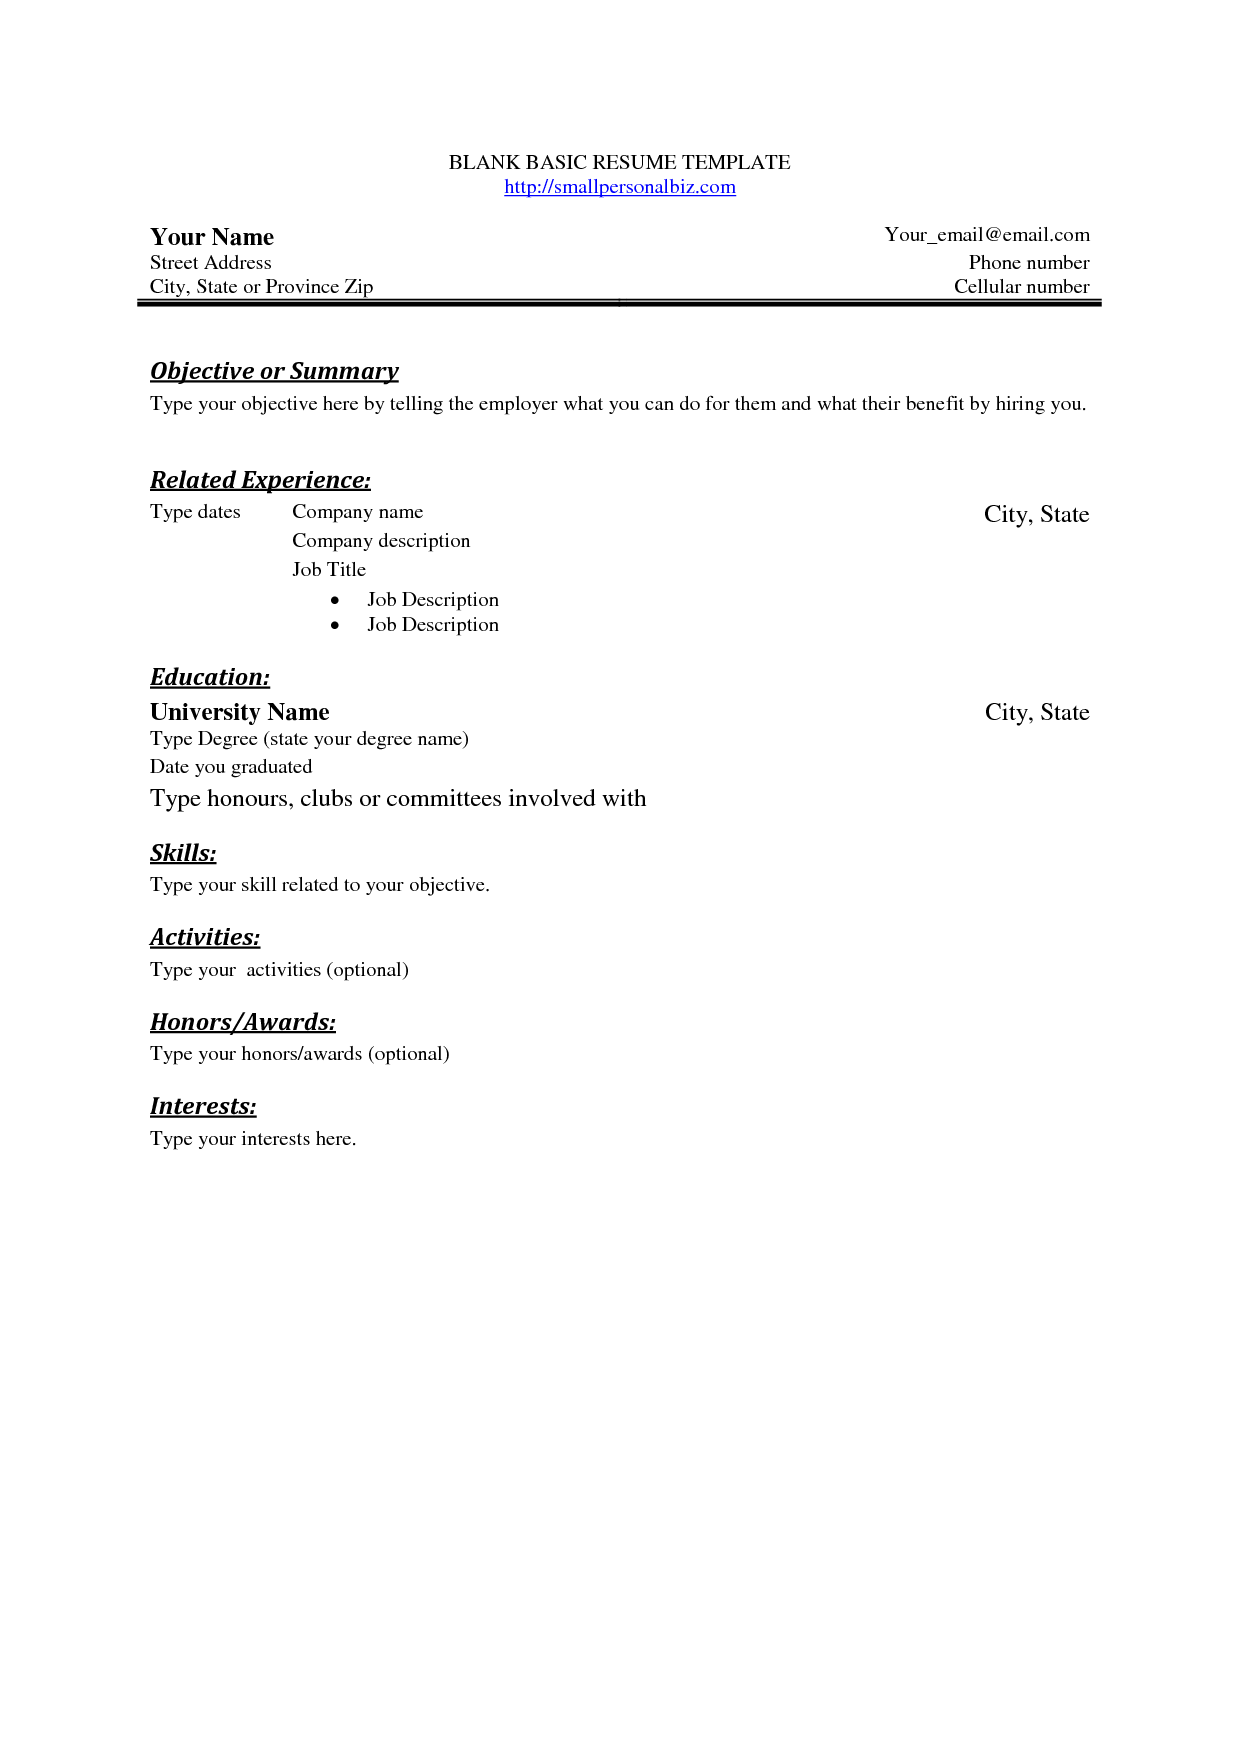 Sample Of Simple Resume Format Free Basic Blank Resume Template Free Basic Sample